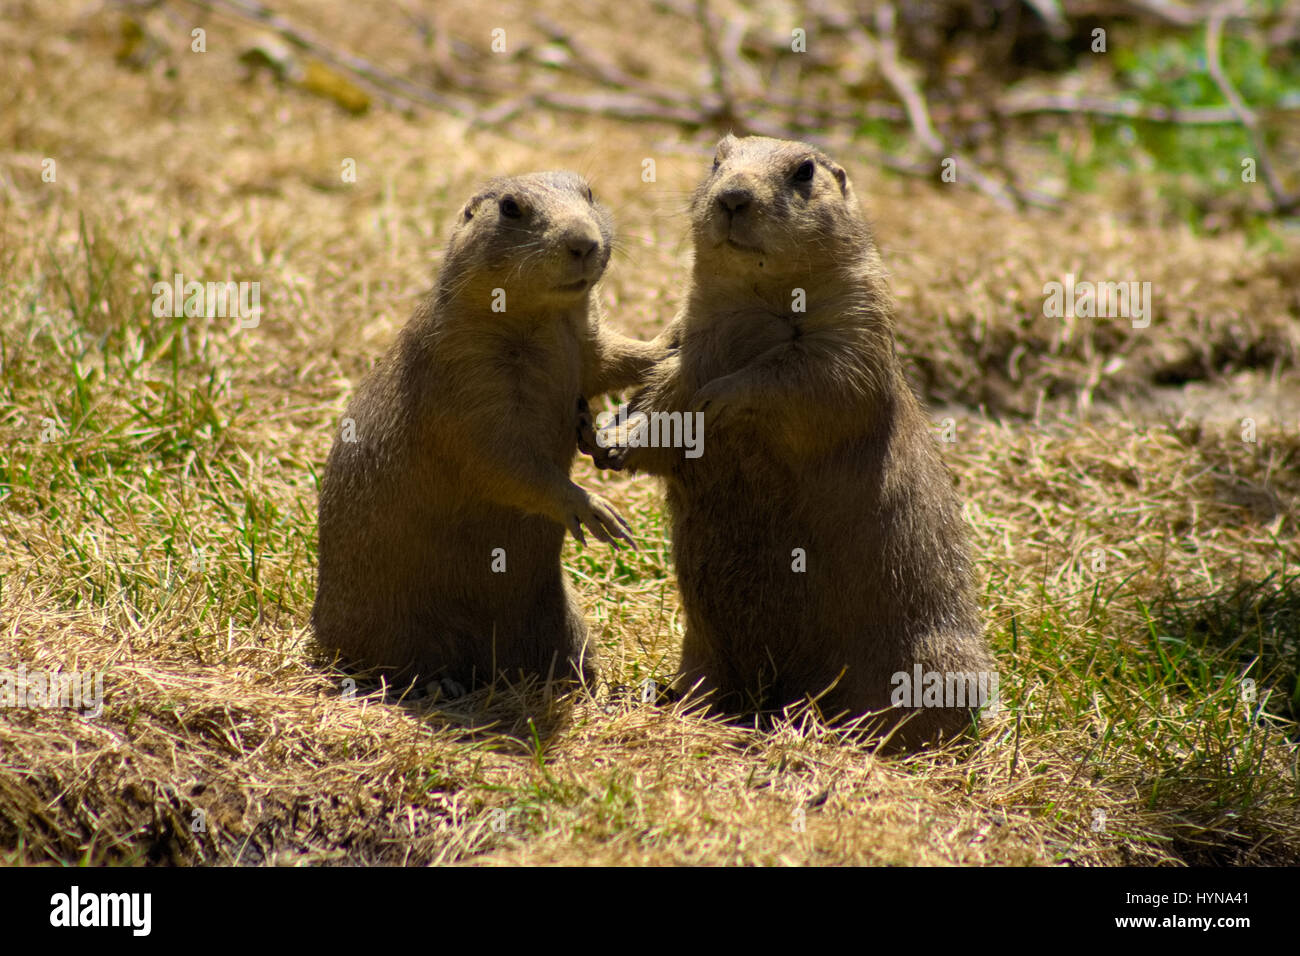 Two prairie dogs stock photos two prairie dogs stock images alamy two prairie dogs holding each other stock image m4hsunfo